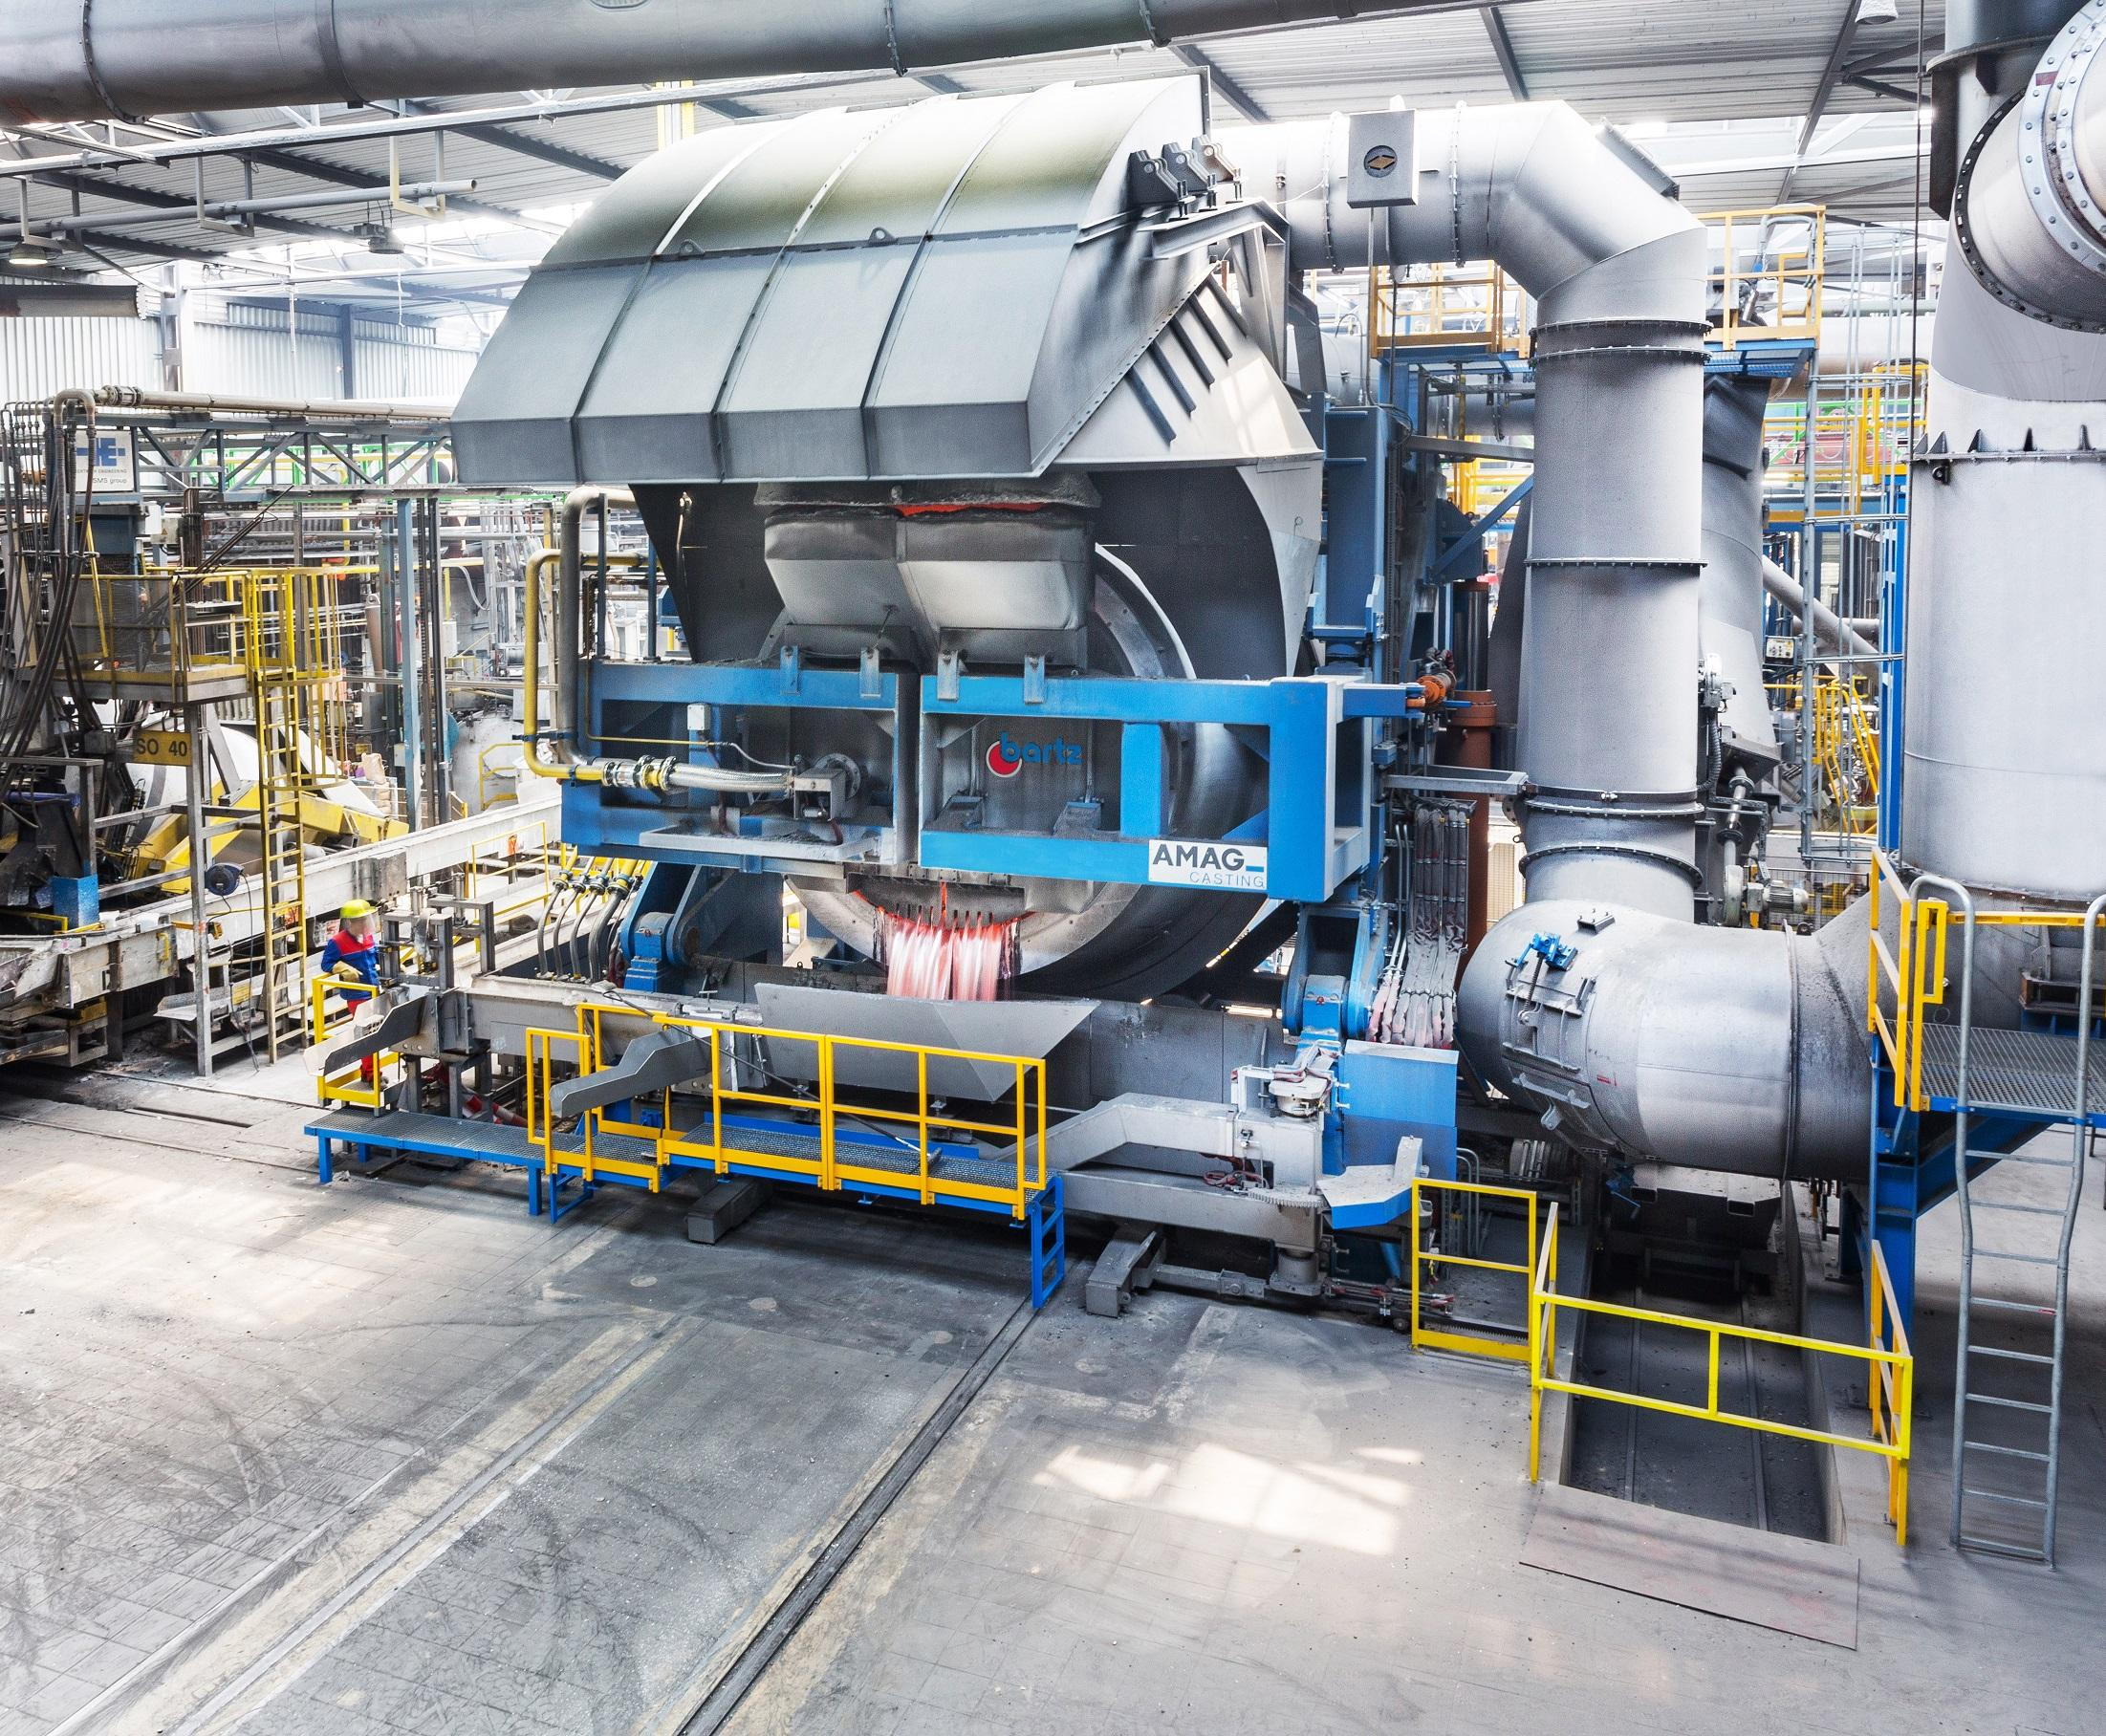 world's largest tilting-rotary melting furnace at AMAG casting enables us to deliver high-quality cast alloys